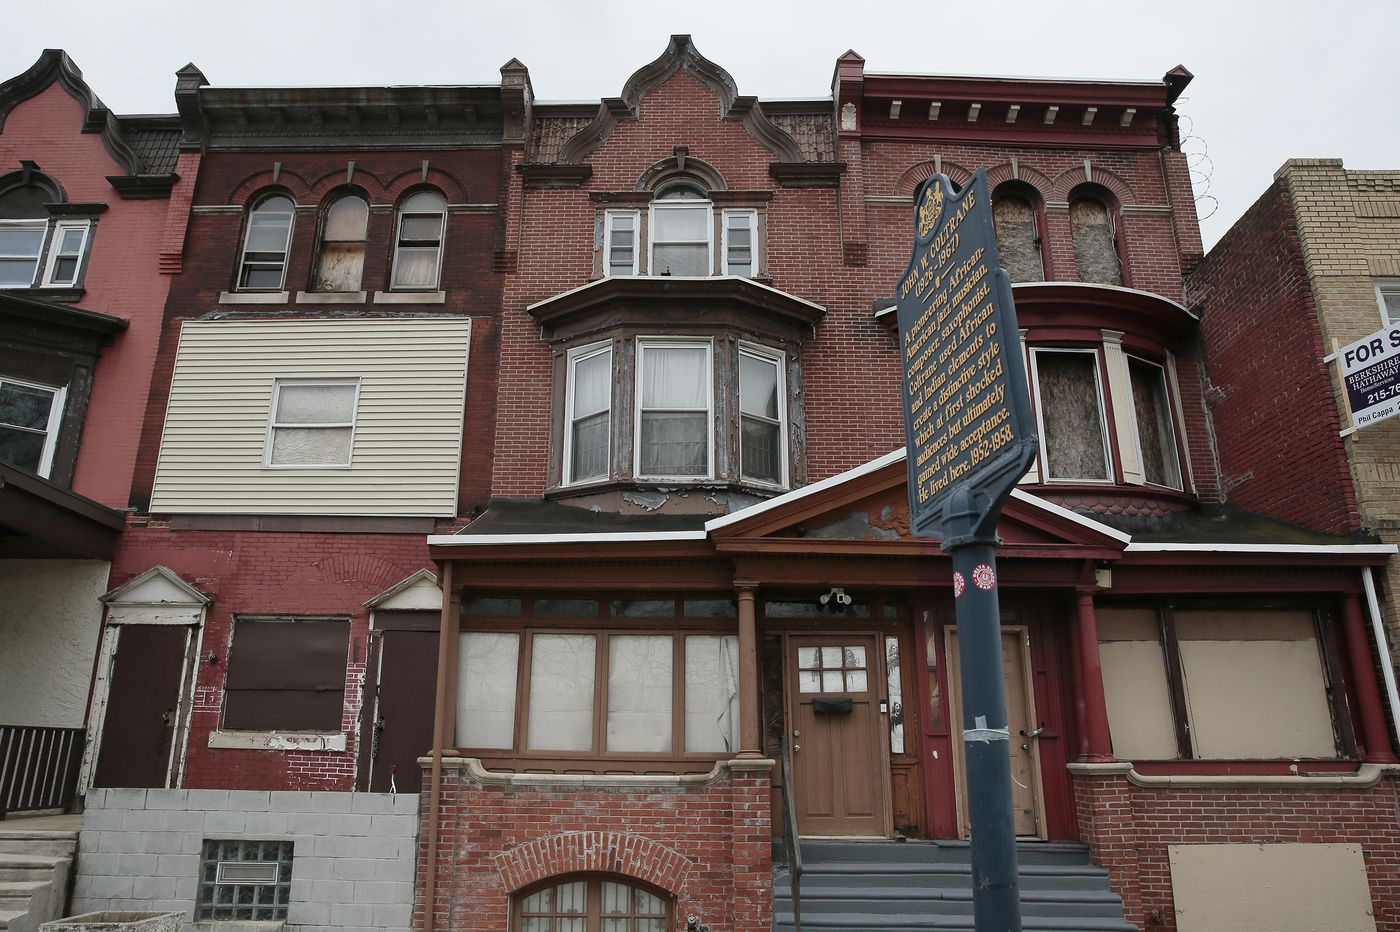 Preserving John Coltrane's house can help save Philly's soul   Opinion